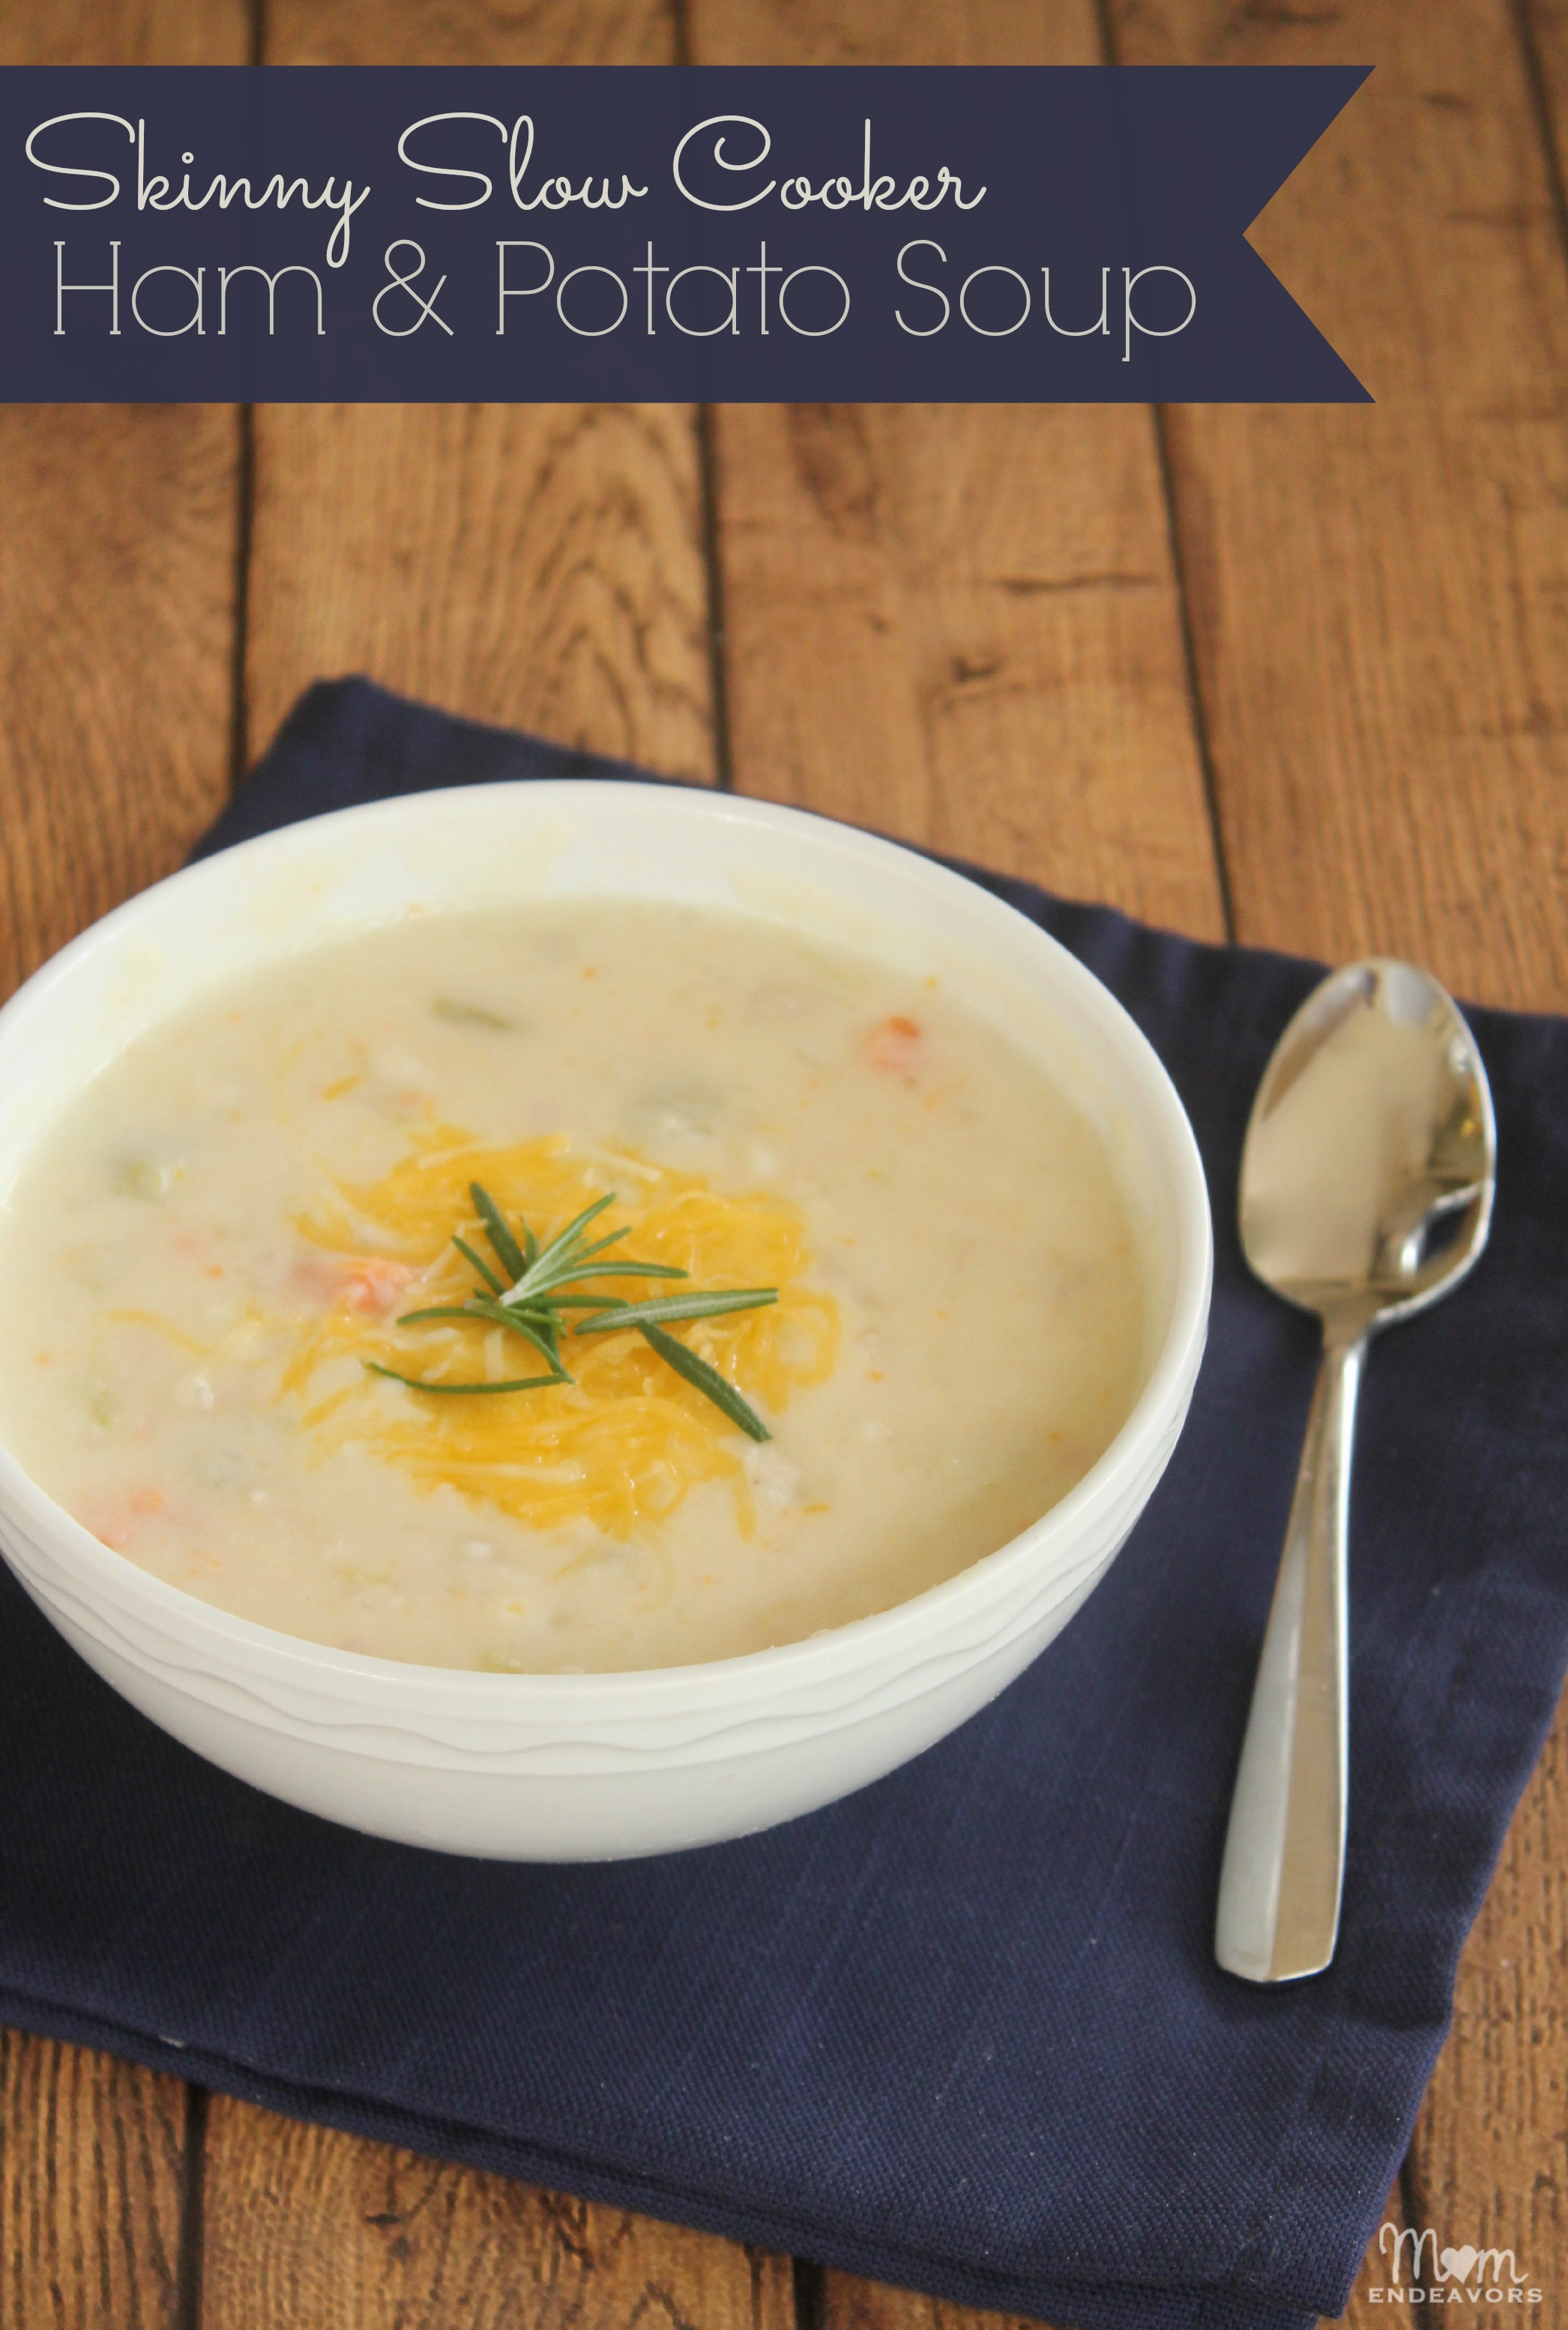 Skinny Slow Cooker Ham & Potato Soup